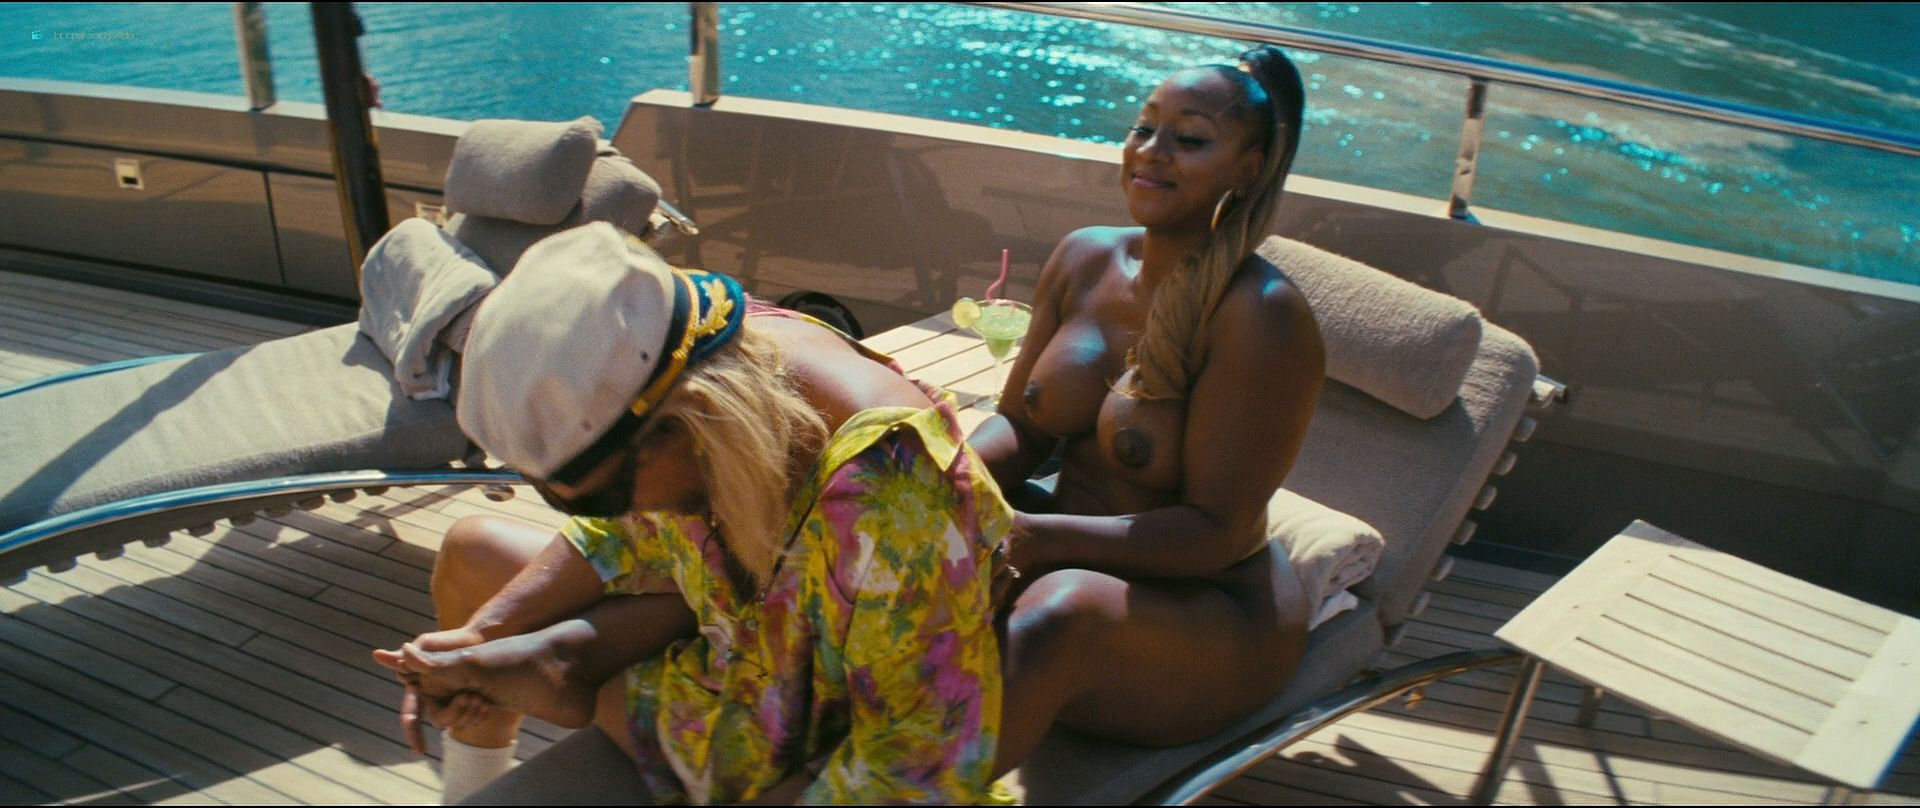 Isla Fisher hot and sexy others nude topless - The Beach Bum (2019) 1080p BluRay (17)